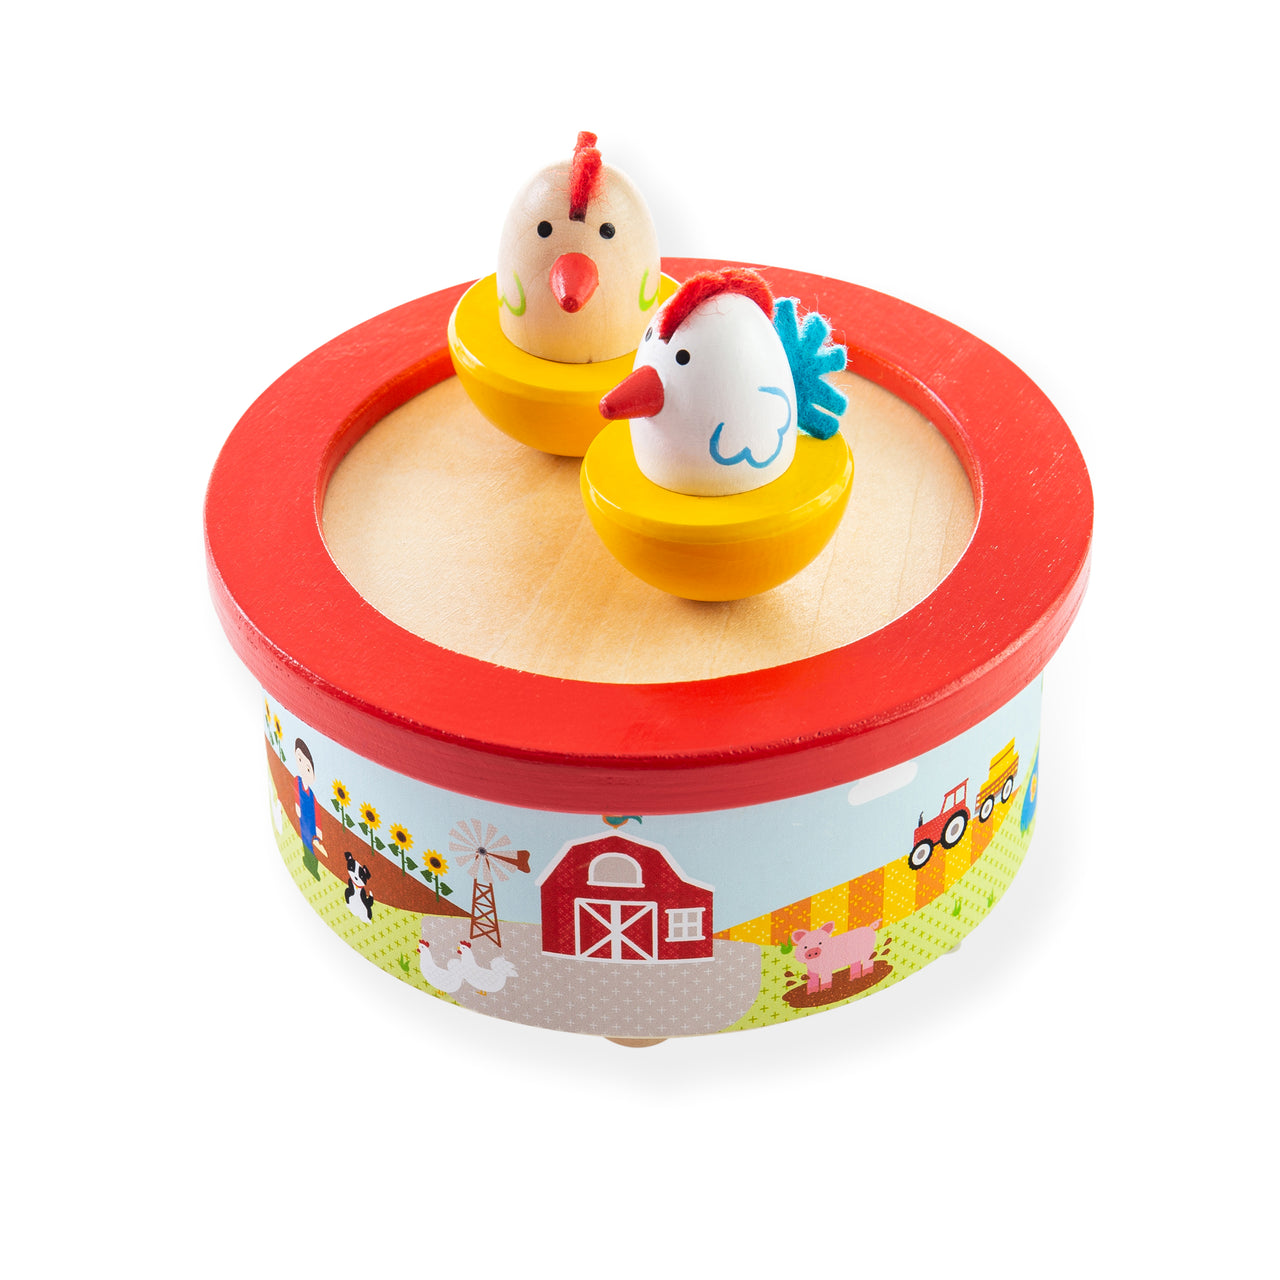 Wind them up and watch them dance with this fun wooden musical dancing toy from Bigjigs! This music box features two chickens who dance and spin on a mirrored base, providing hours of entertainment.